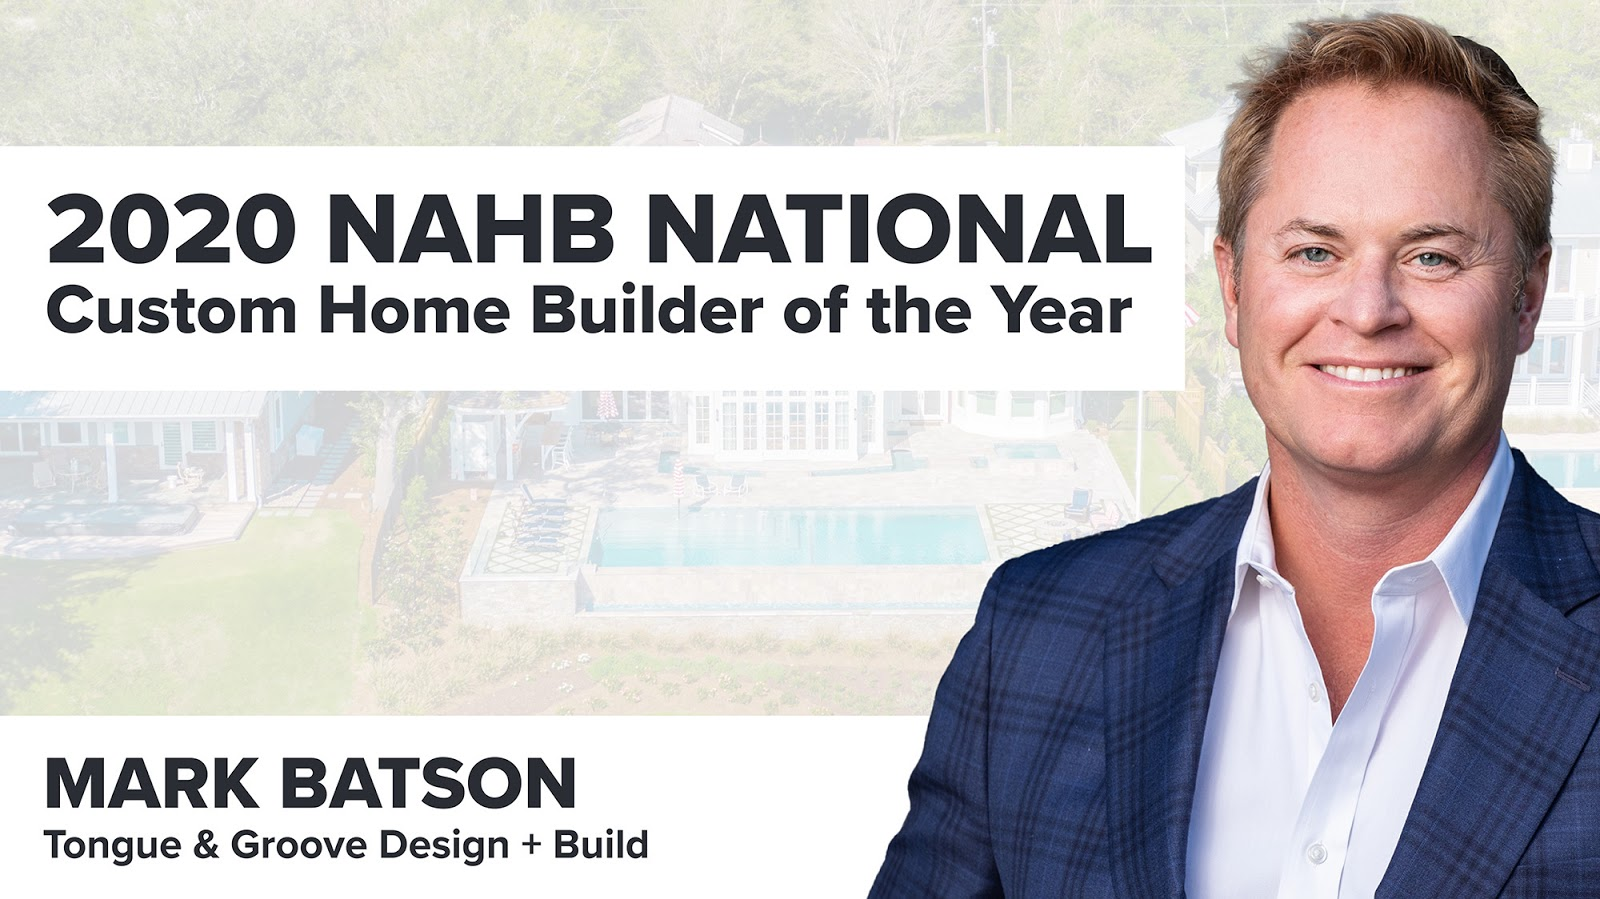 National Association of Home Builders 2020 Home Builder of the Year Mark Batson